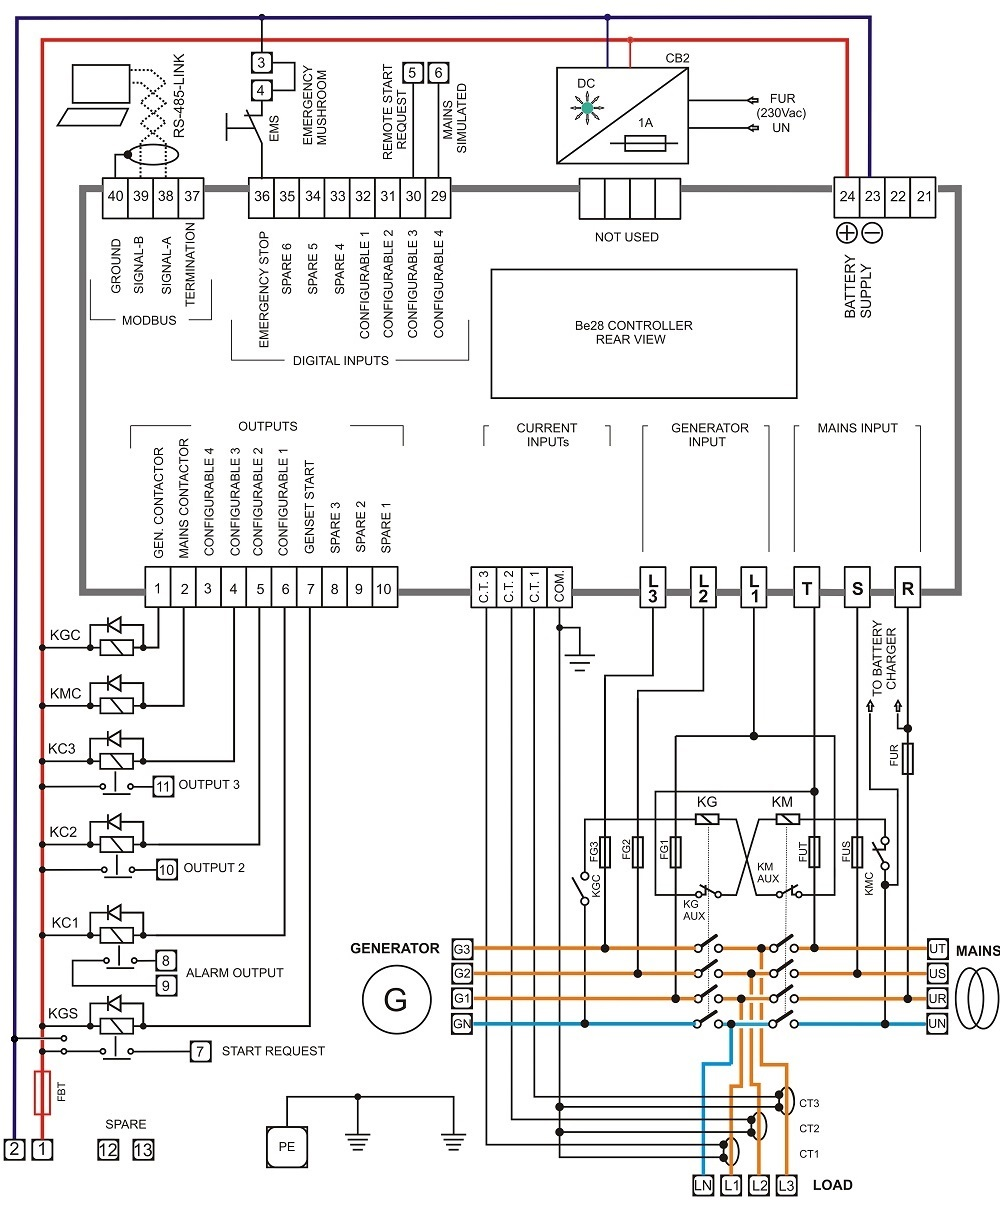 Wiring Diagram Amf Genset - Ranpur Mohammedshrine Wiring ... on plc diagram, solar panels diagram, home wiring, national electrical code, ground and neutral, electrical conduit, light switch, earthing system, instrumentation diagram, ac power plugs and sockets, junction box, drilling diagram, installation diagram, rslogix diagram, knob and tube wiring, assembly diagram, ring circuit, circuit breaker, telecommunications diagram, distribution board, residual-current device, panel wiring icon, three-phase electric power, electrical wiring, circuit diagram, grounding diagram, troubleshooting diagram, electricians diagram, electrical wiring in north america, power cable,